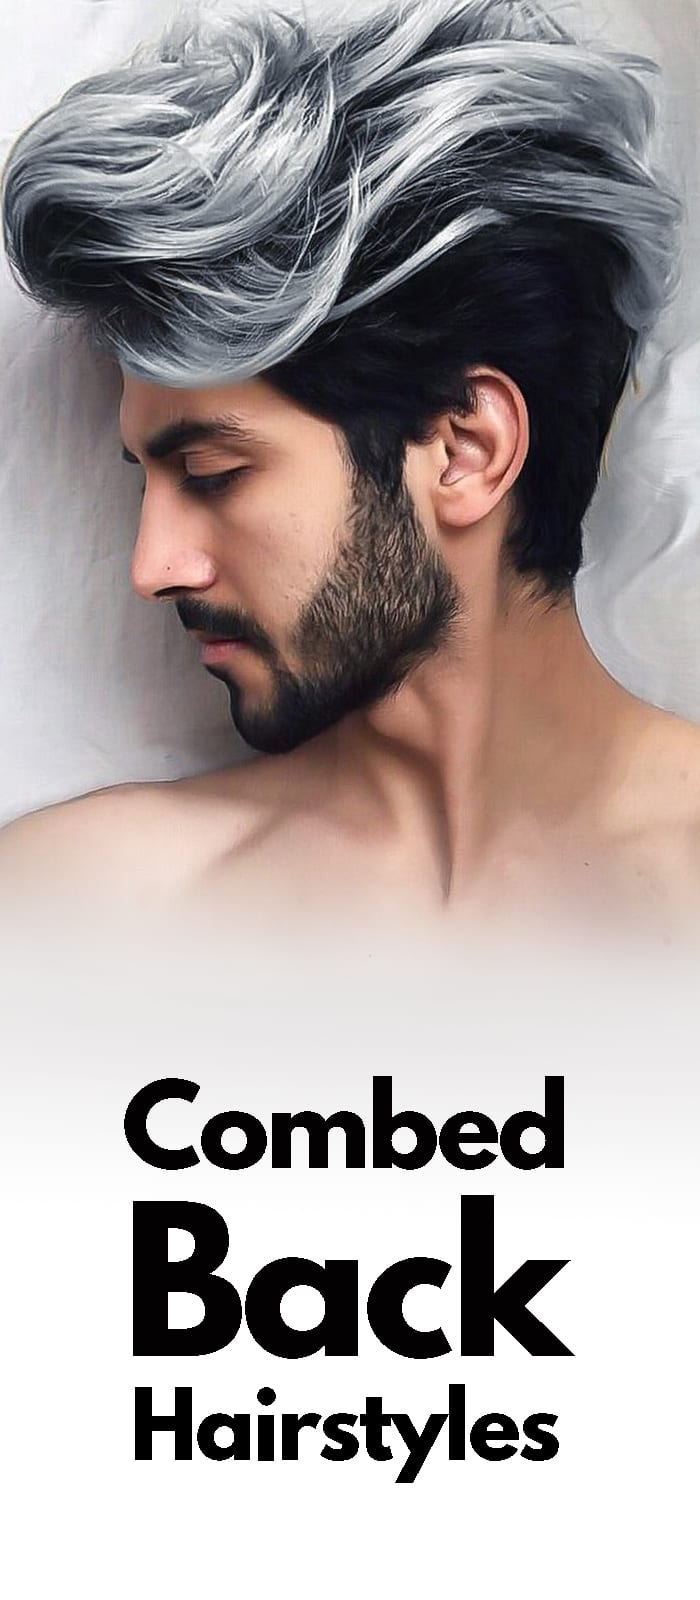 Combed Back Hairstyle with beard